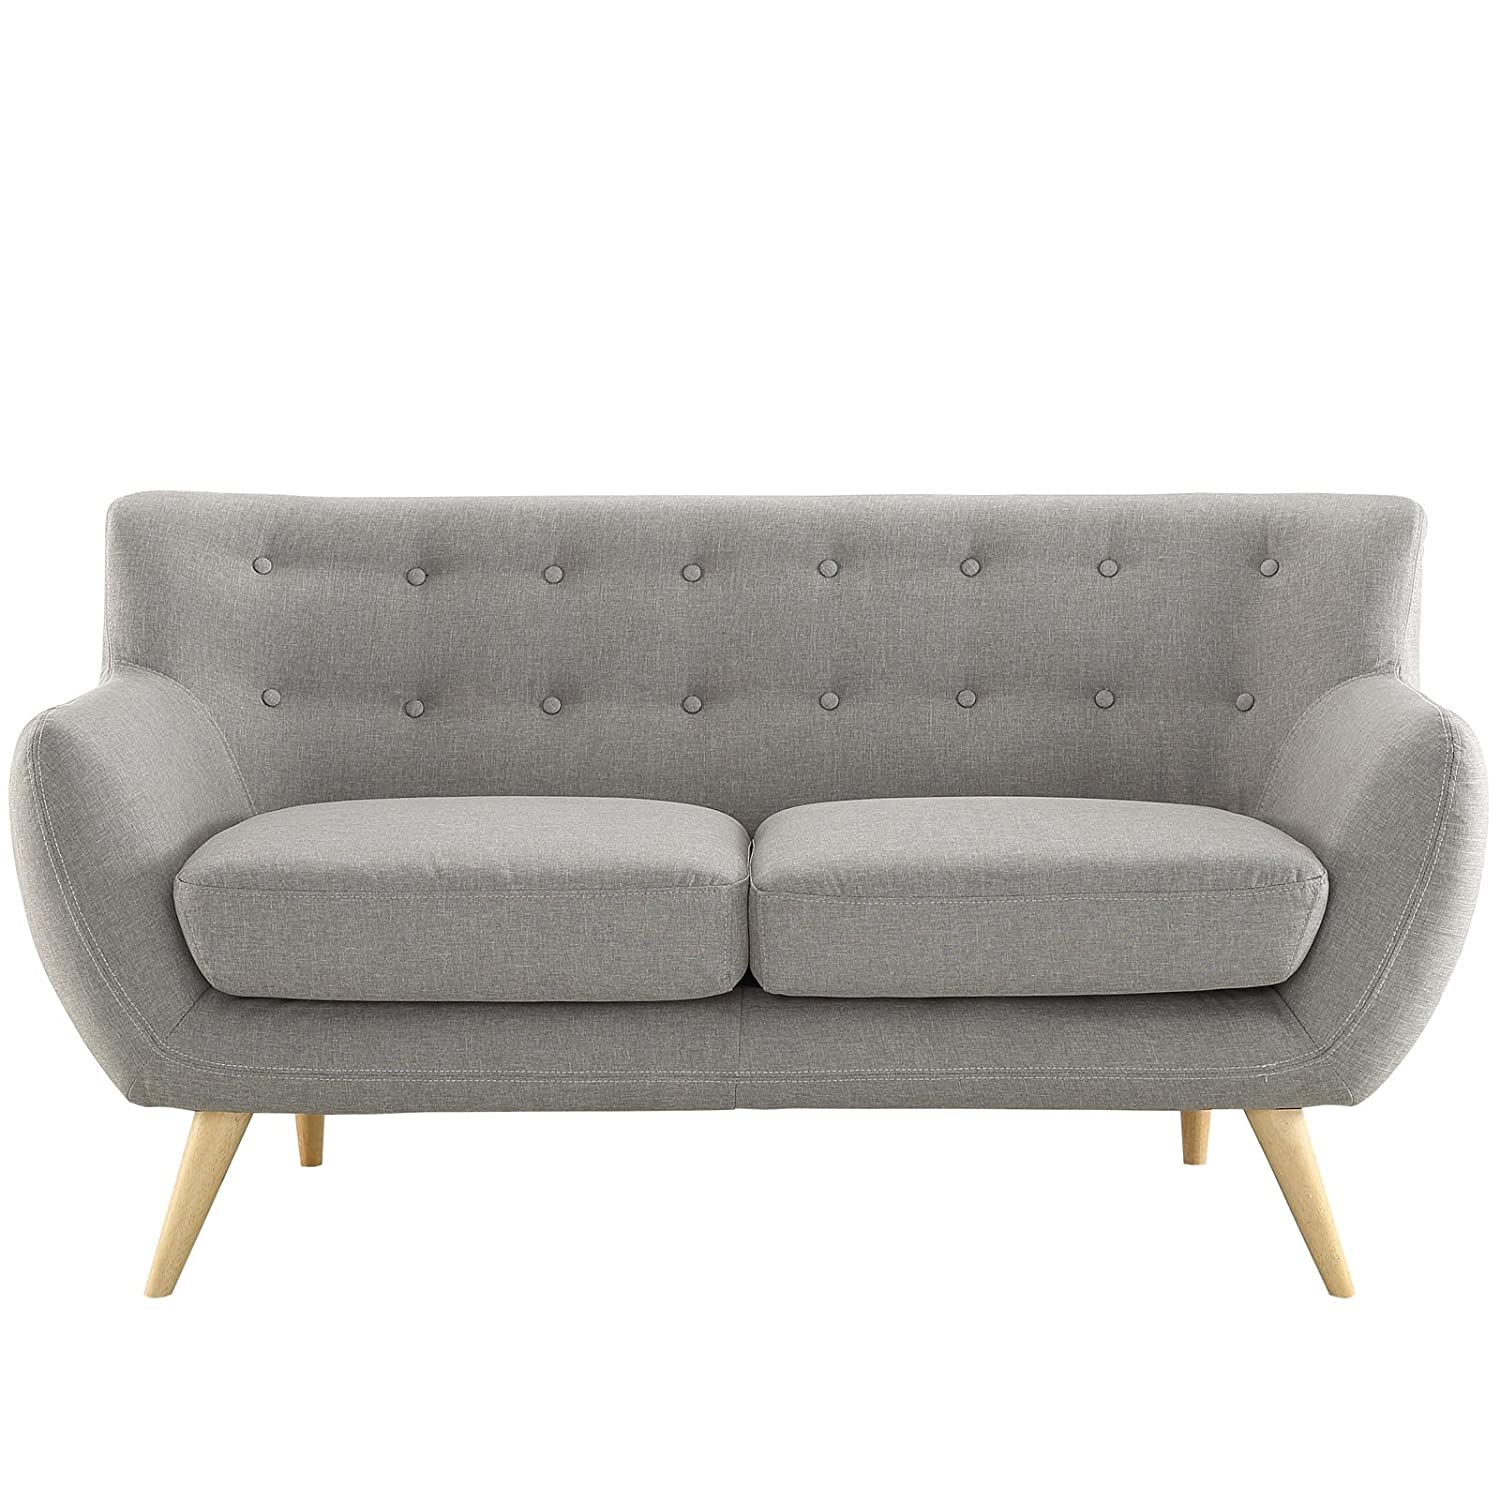 Amazon Modway Remark Mid Century Modern Loveseat With Upholstered Fabric In Light Gray Kitchen Dining